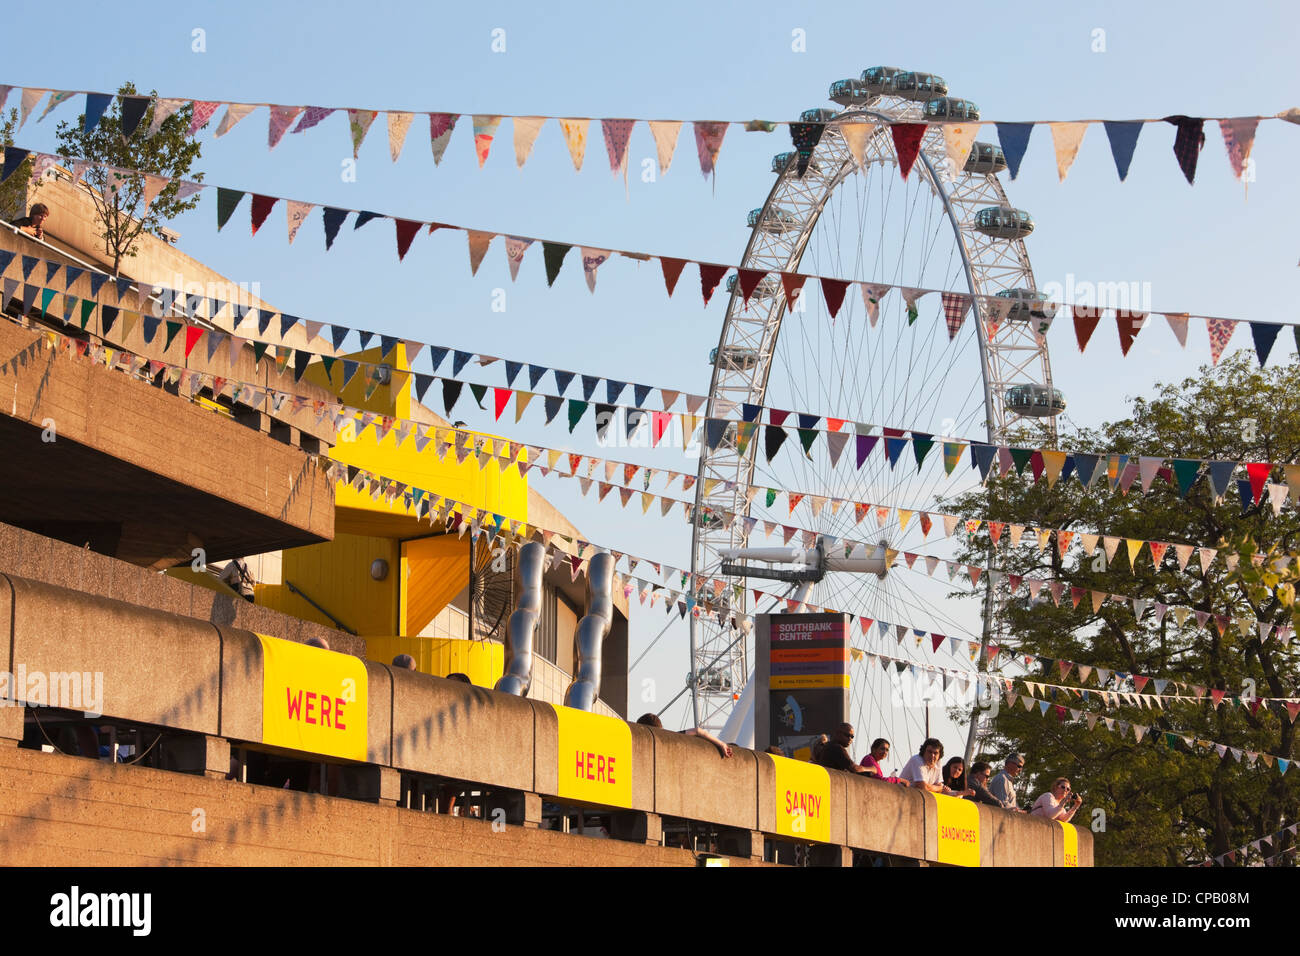 People leaning over balcony of BFI in front of London Eye; London; England - Stock Image